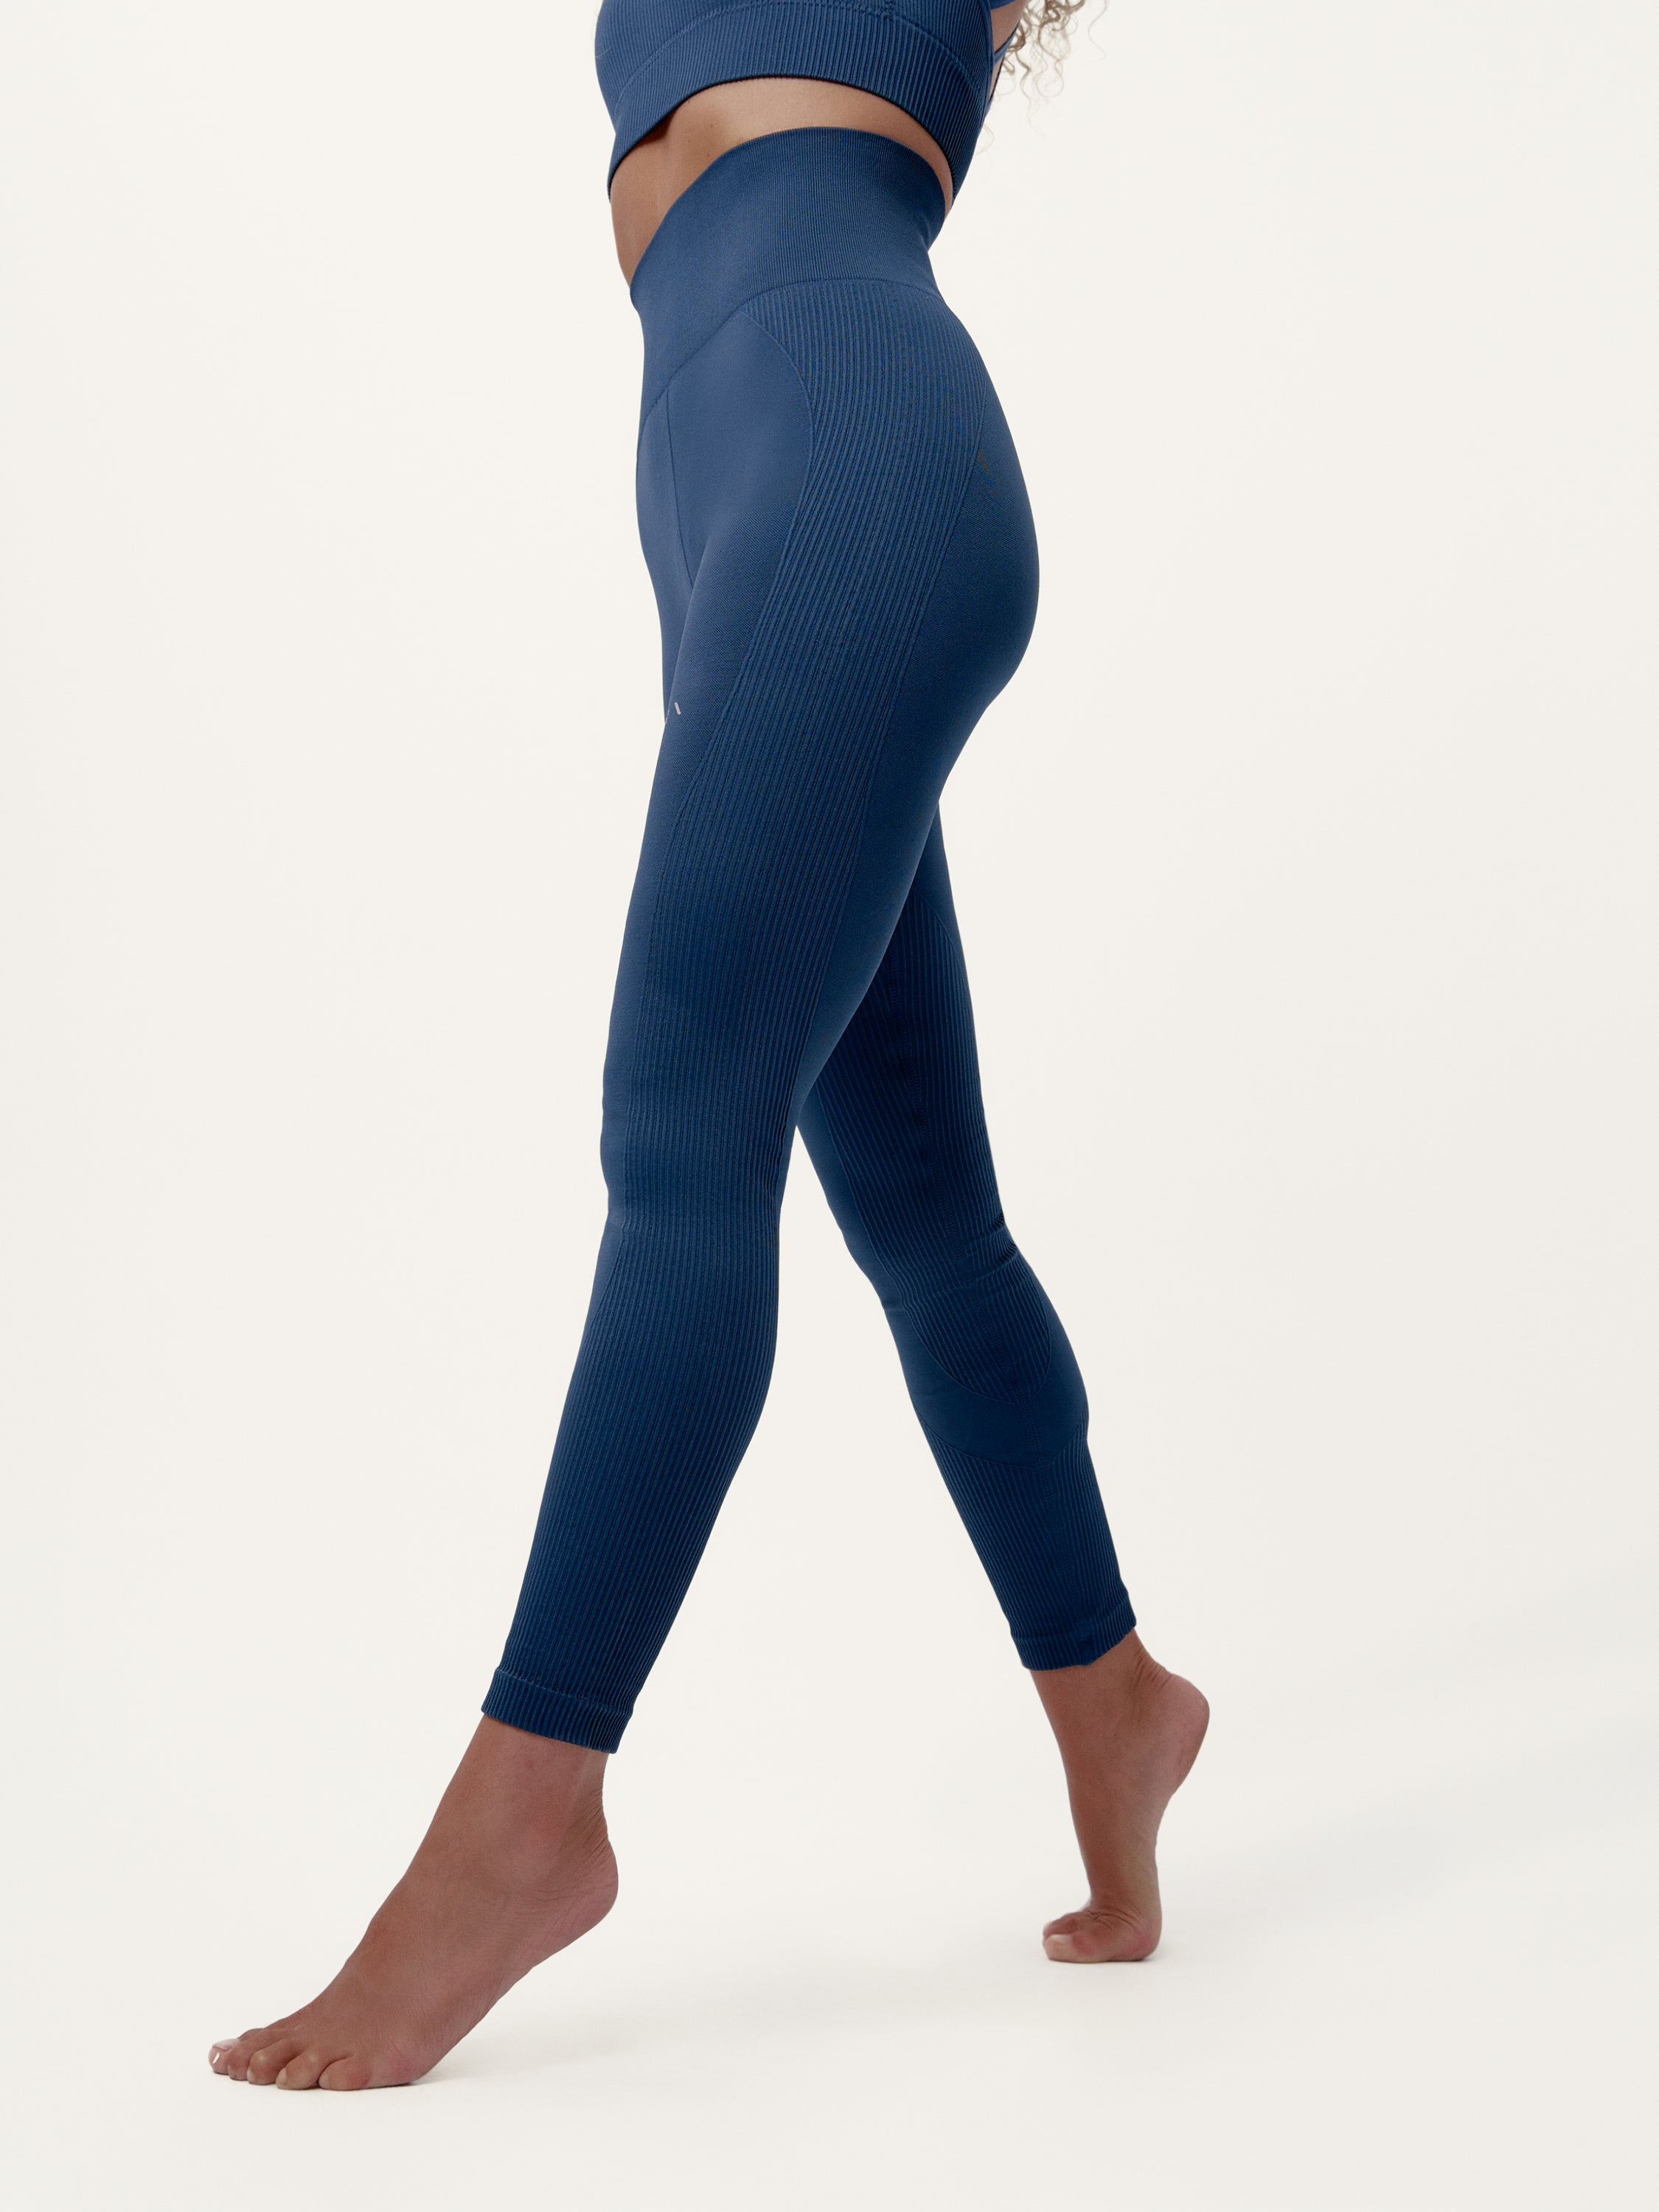 Legging Malati Navy